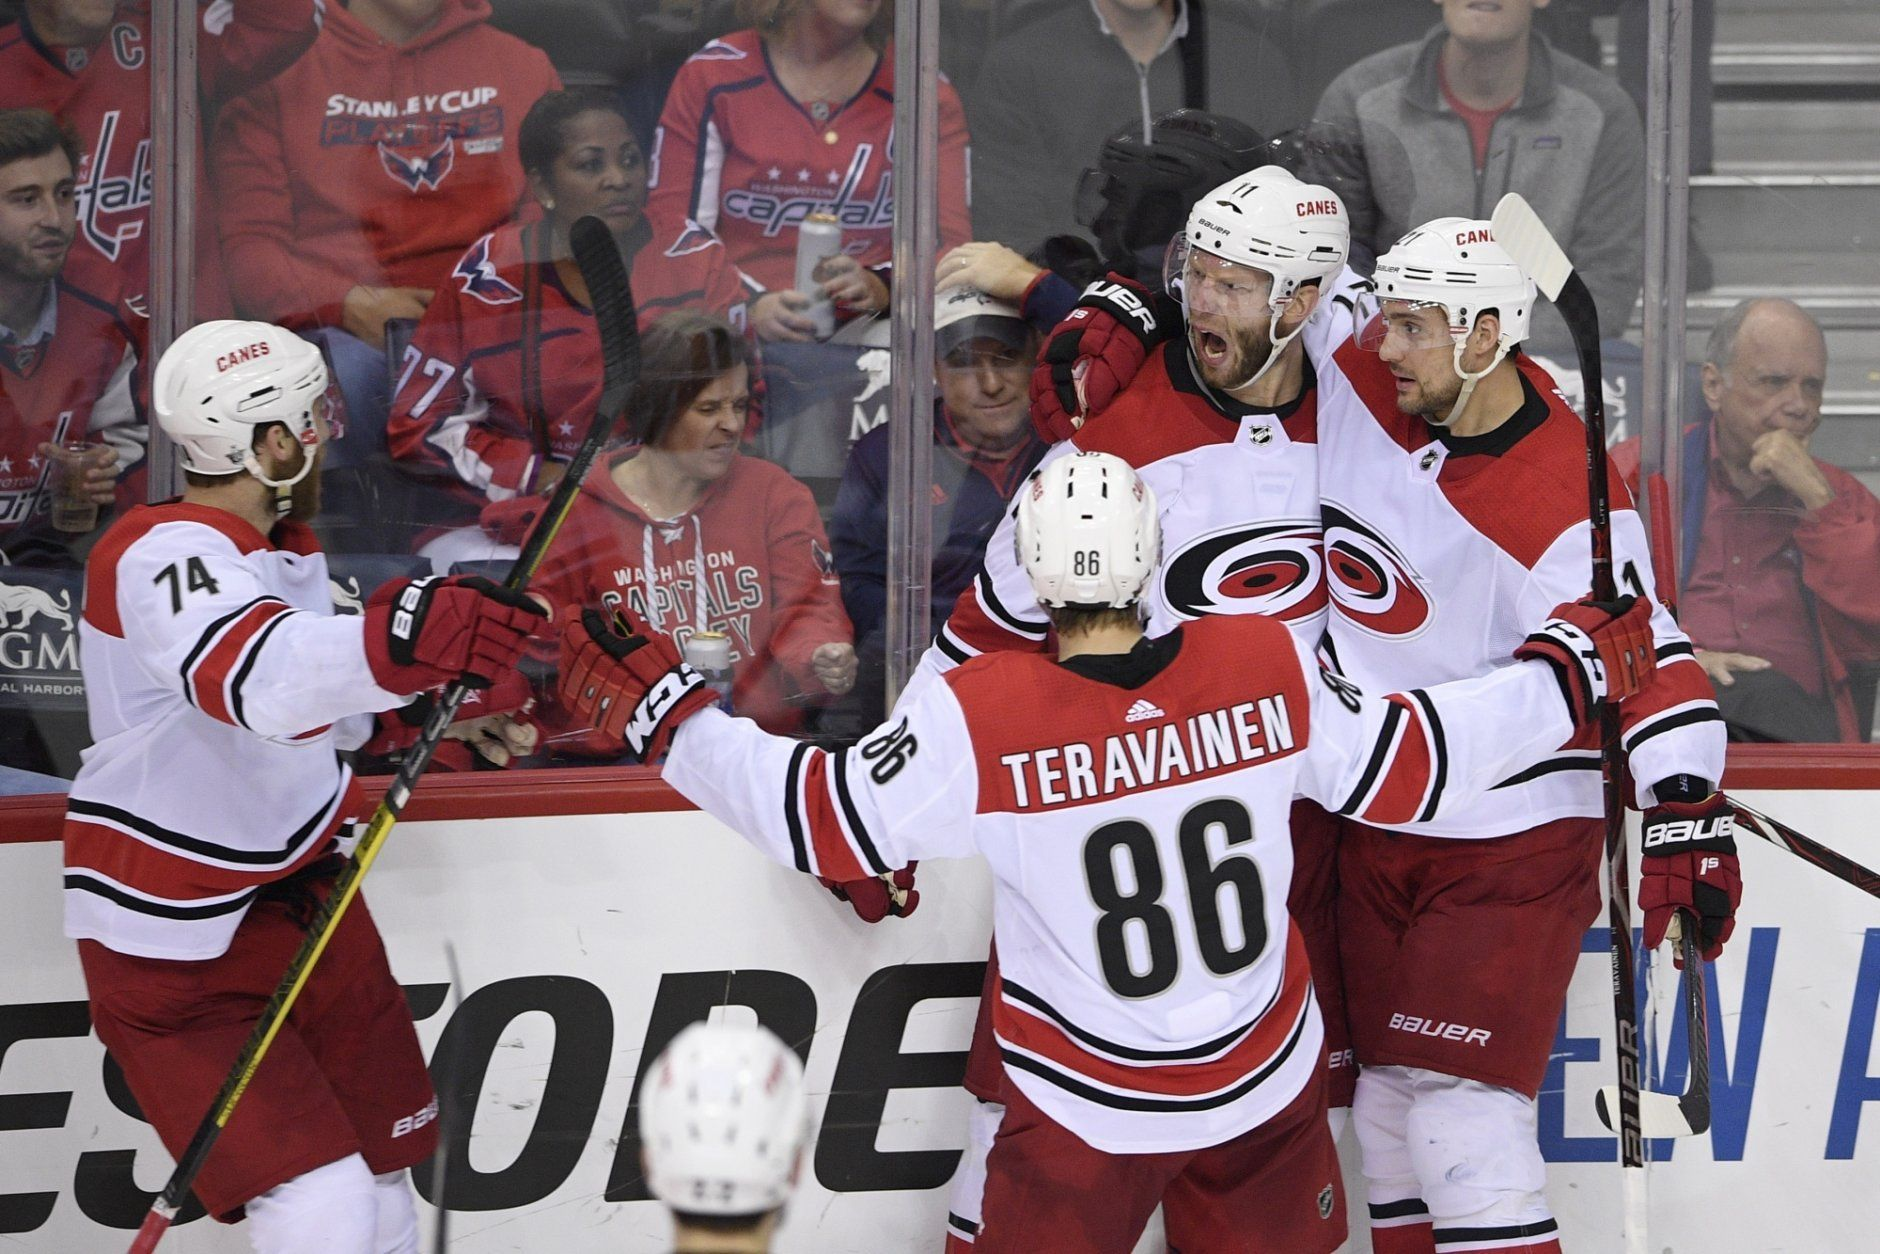 Carolina Hurricanes center Jordan Staal (11) celebrates his goal with right wing Nino Niederreiter, right, left wing Teuvo Teravainen (86), of Finland, and defenseman Jaccob Slavin (74) during the third period of Game 7 of an NHL hockey first-round playoff series against the Washington Capitals, Wednesday, April 24, 2019, in Washington. (AP Photo/Nick Wass)